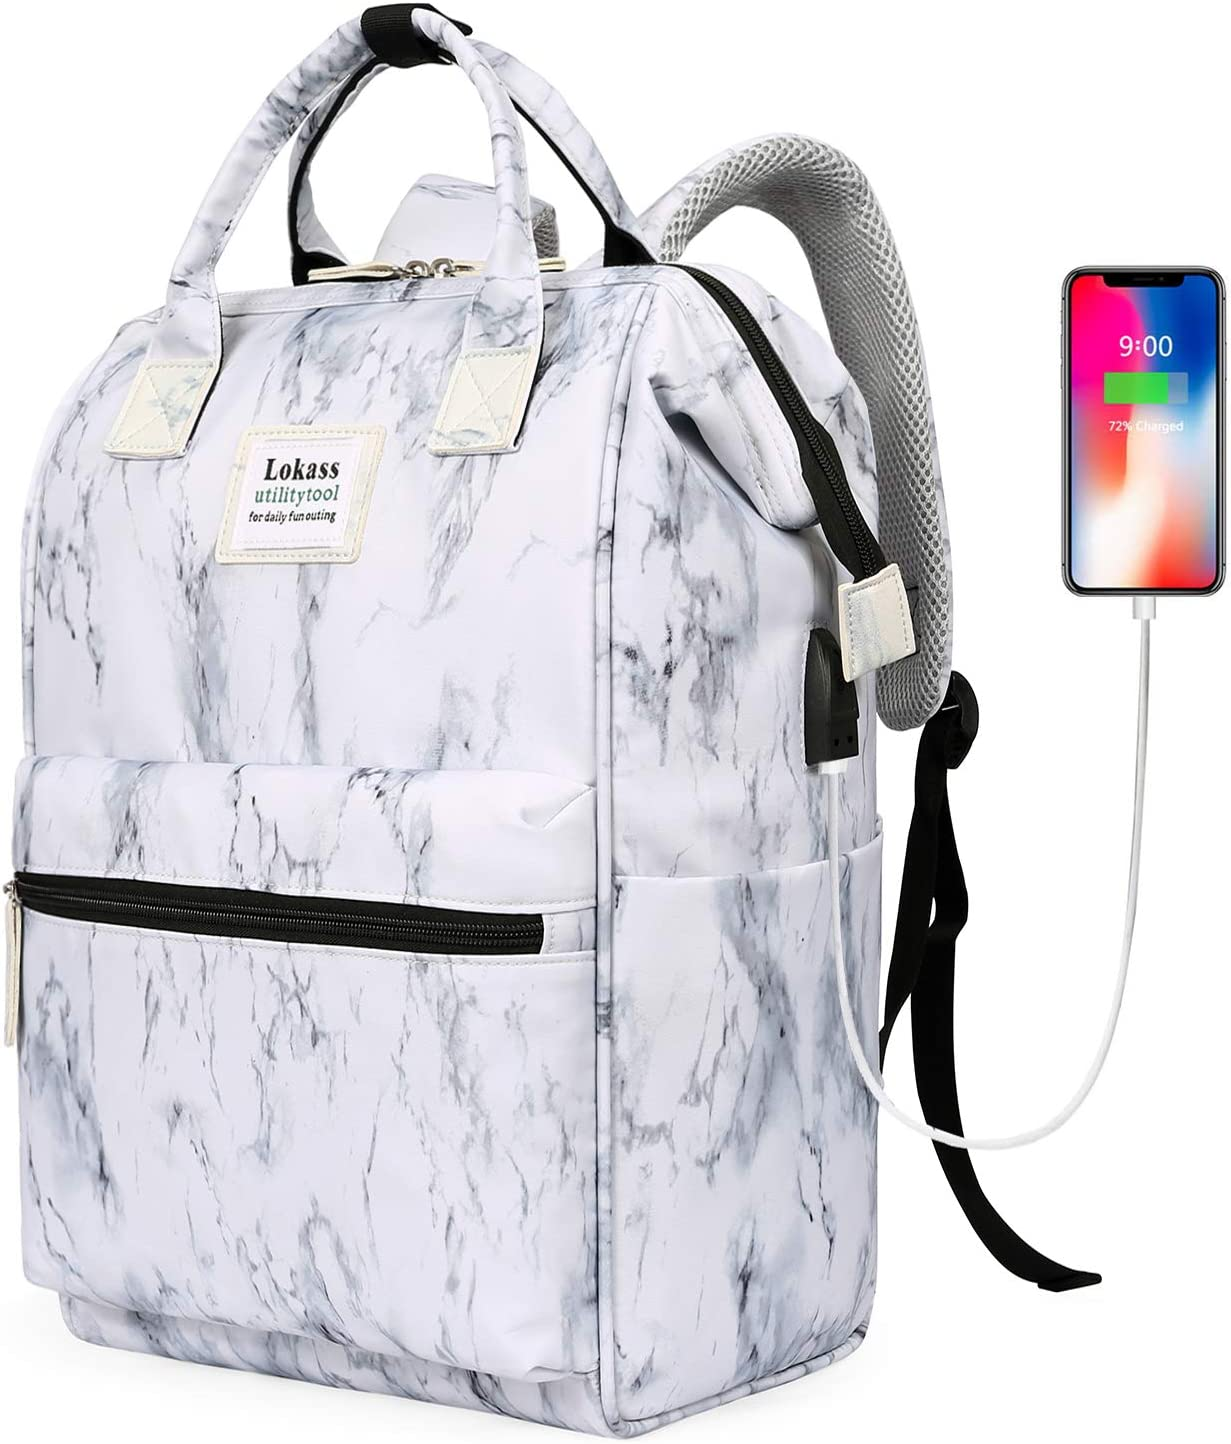 BRINCH Laptop Backpack 15.6 Inch Wide Open Computer Backpack Laptop Bag College Rucksack Water Resistant Business Travel Backpack Multipurpose Daypack with USB Charging Port for Women Men, Marble